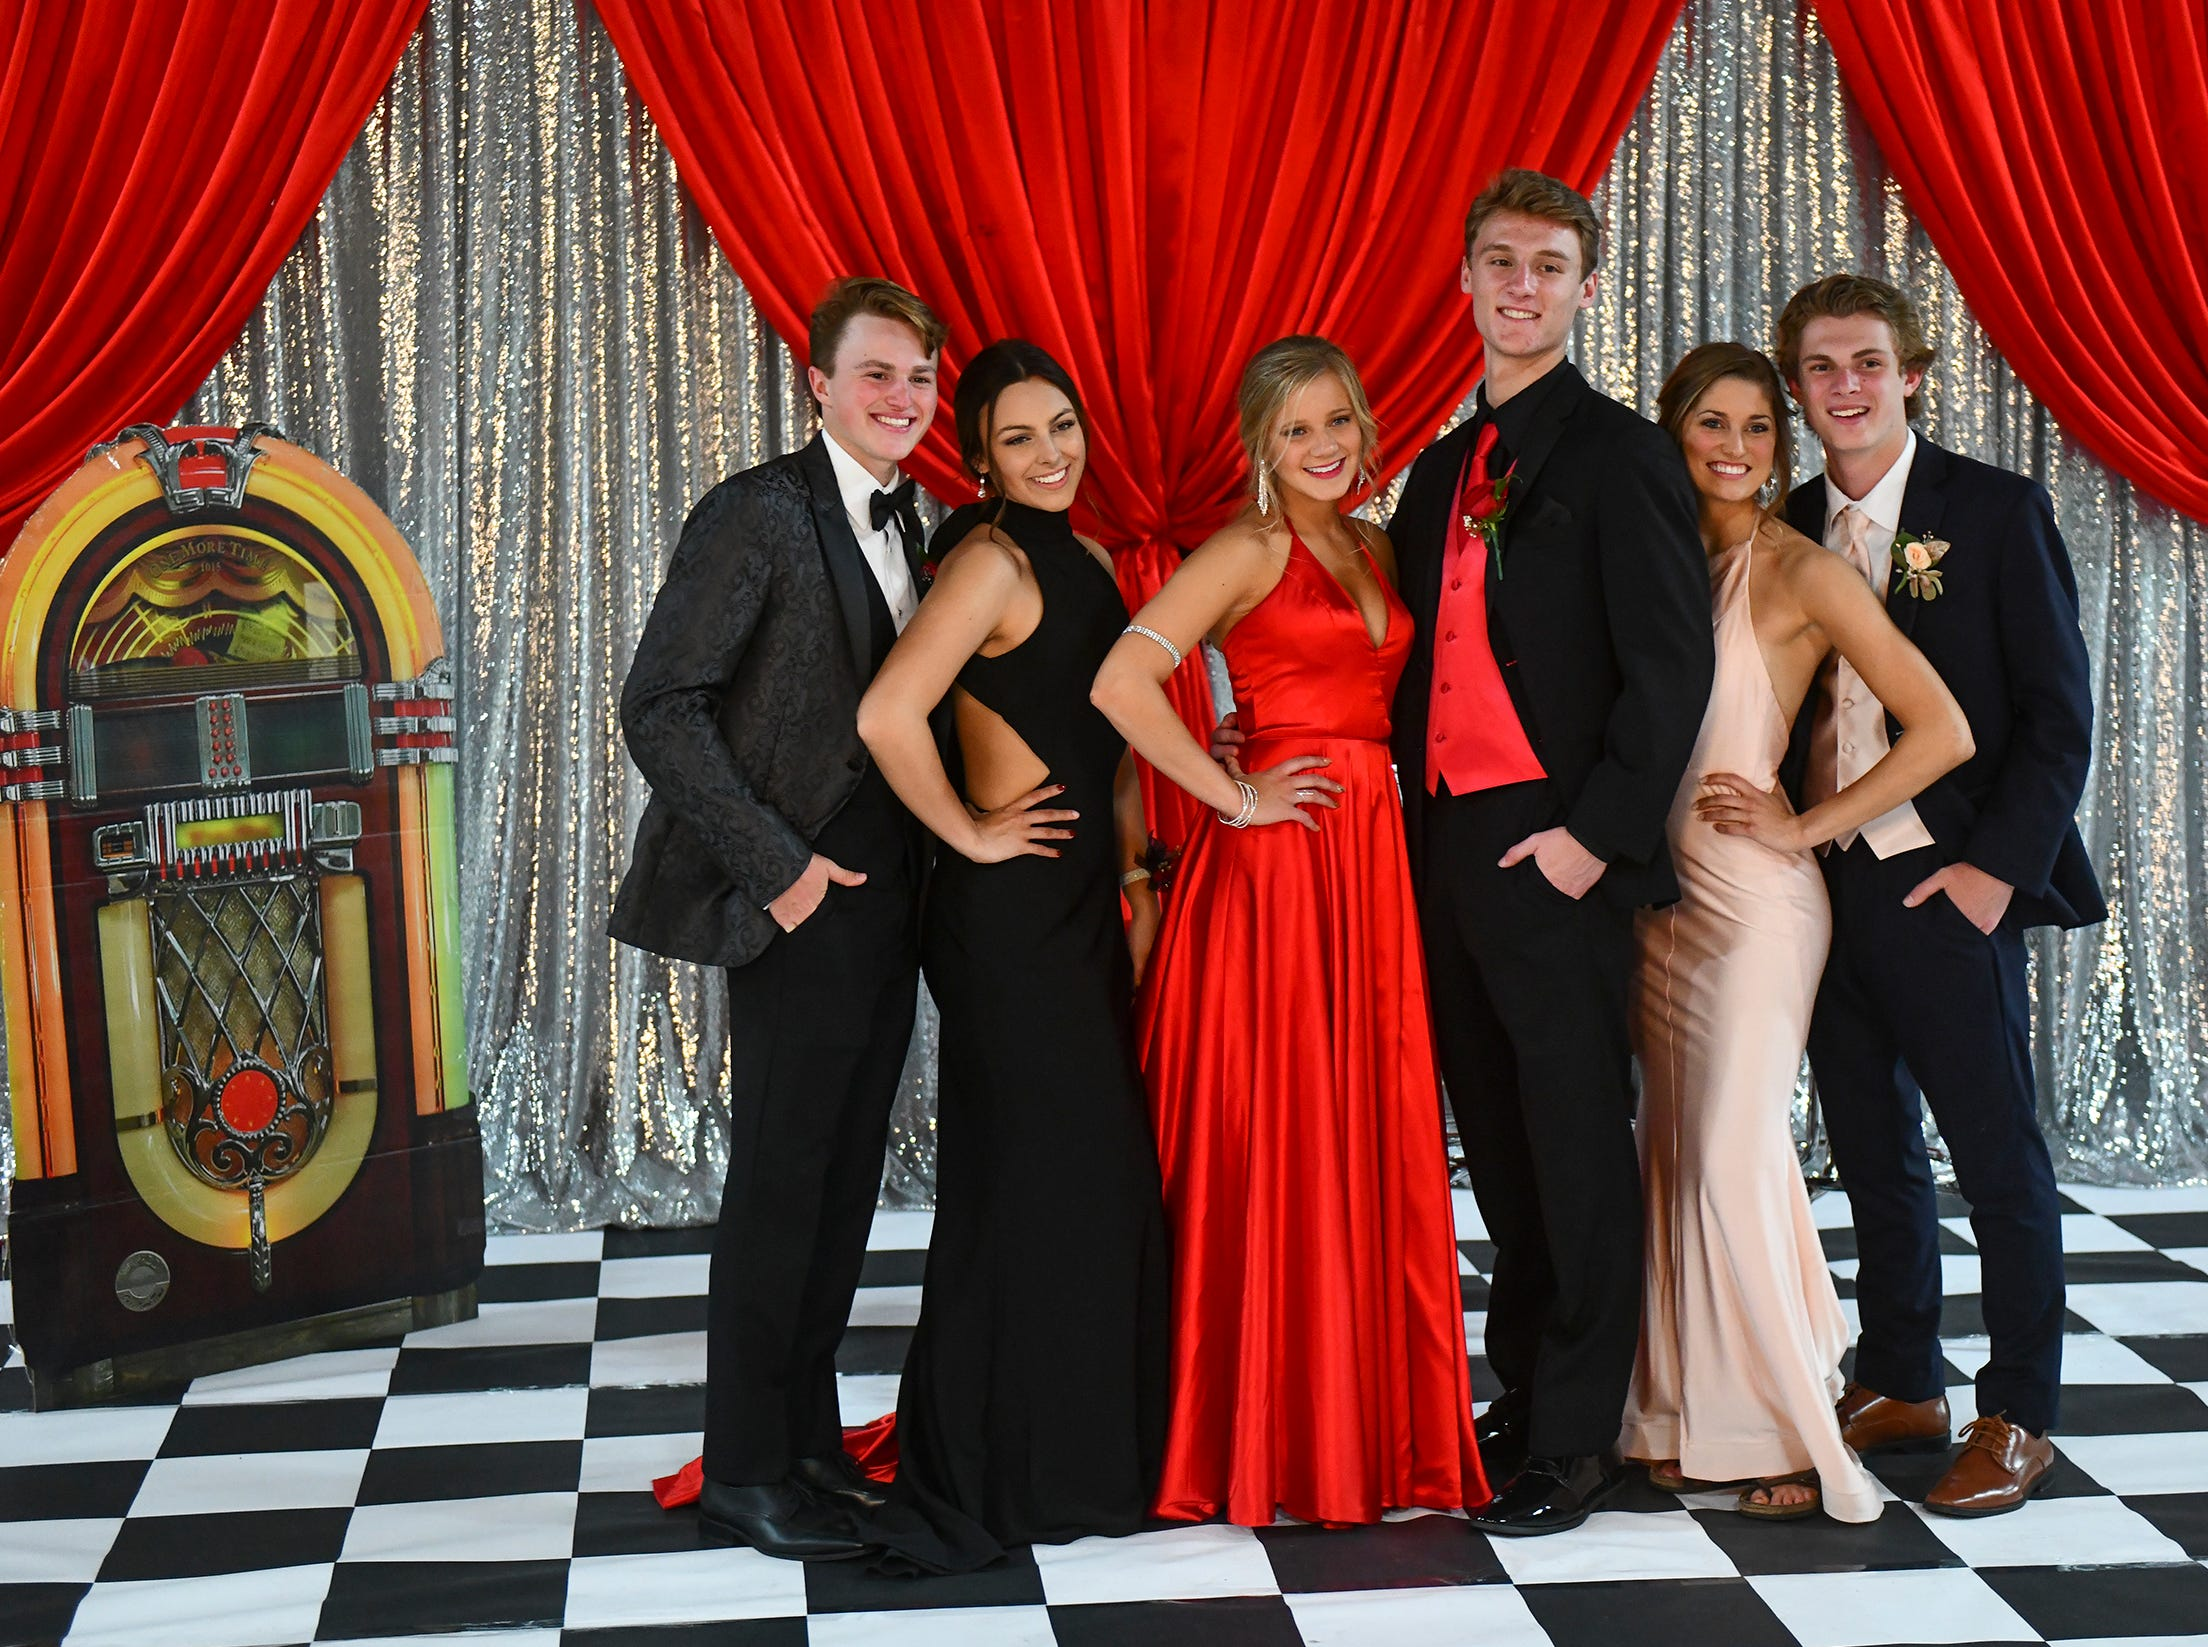 Promgoers strike a pose during Sartell High School prom Saturday, May 4, in St. Cloud.